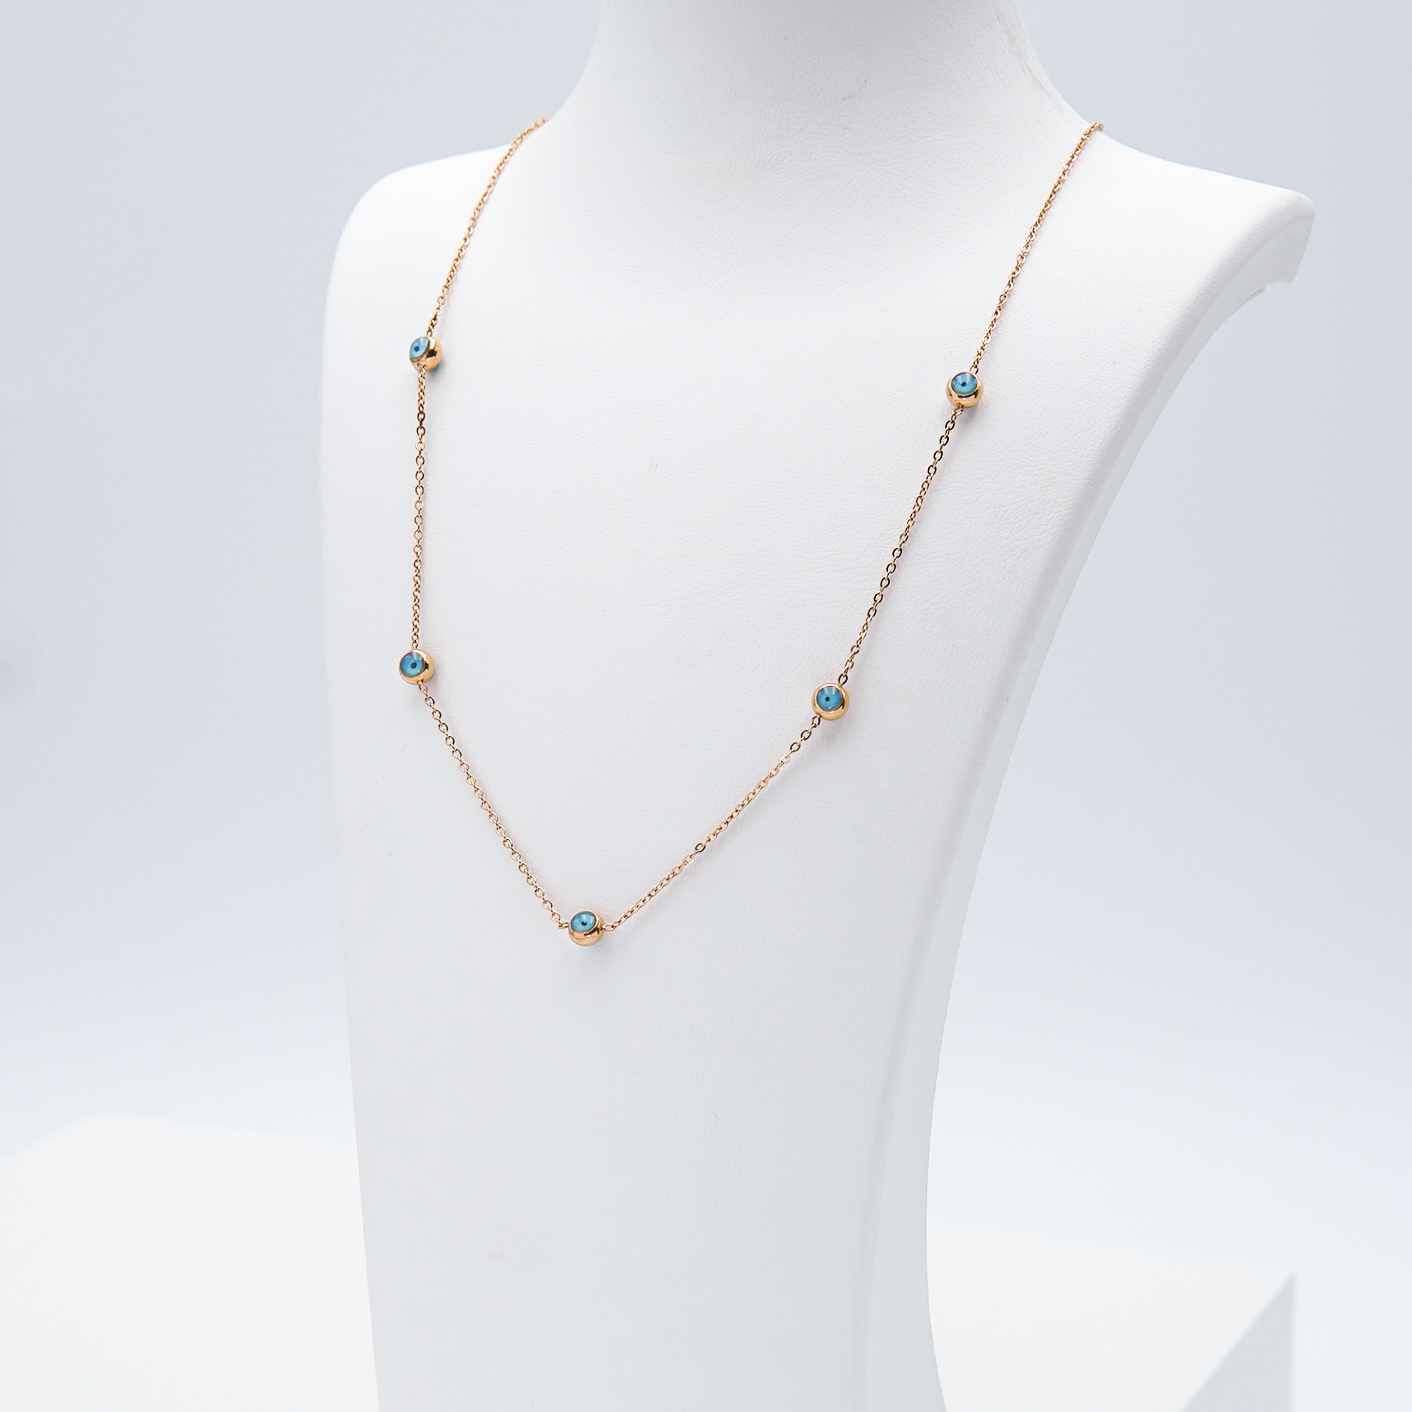 2- Onda ögat Ultimate  Rose Edition Halsband Modern and trendy Necklace and women jewelry and accessories from SWEVALI fashion Sweden